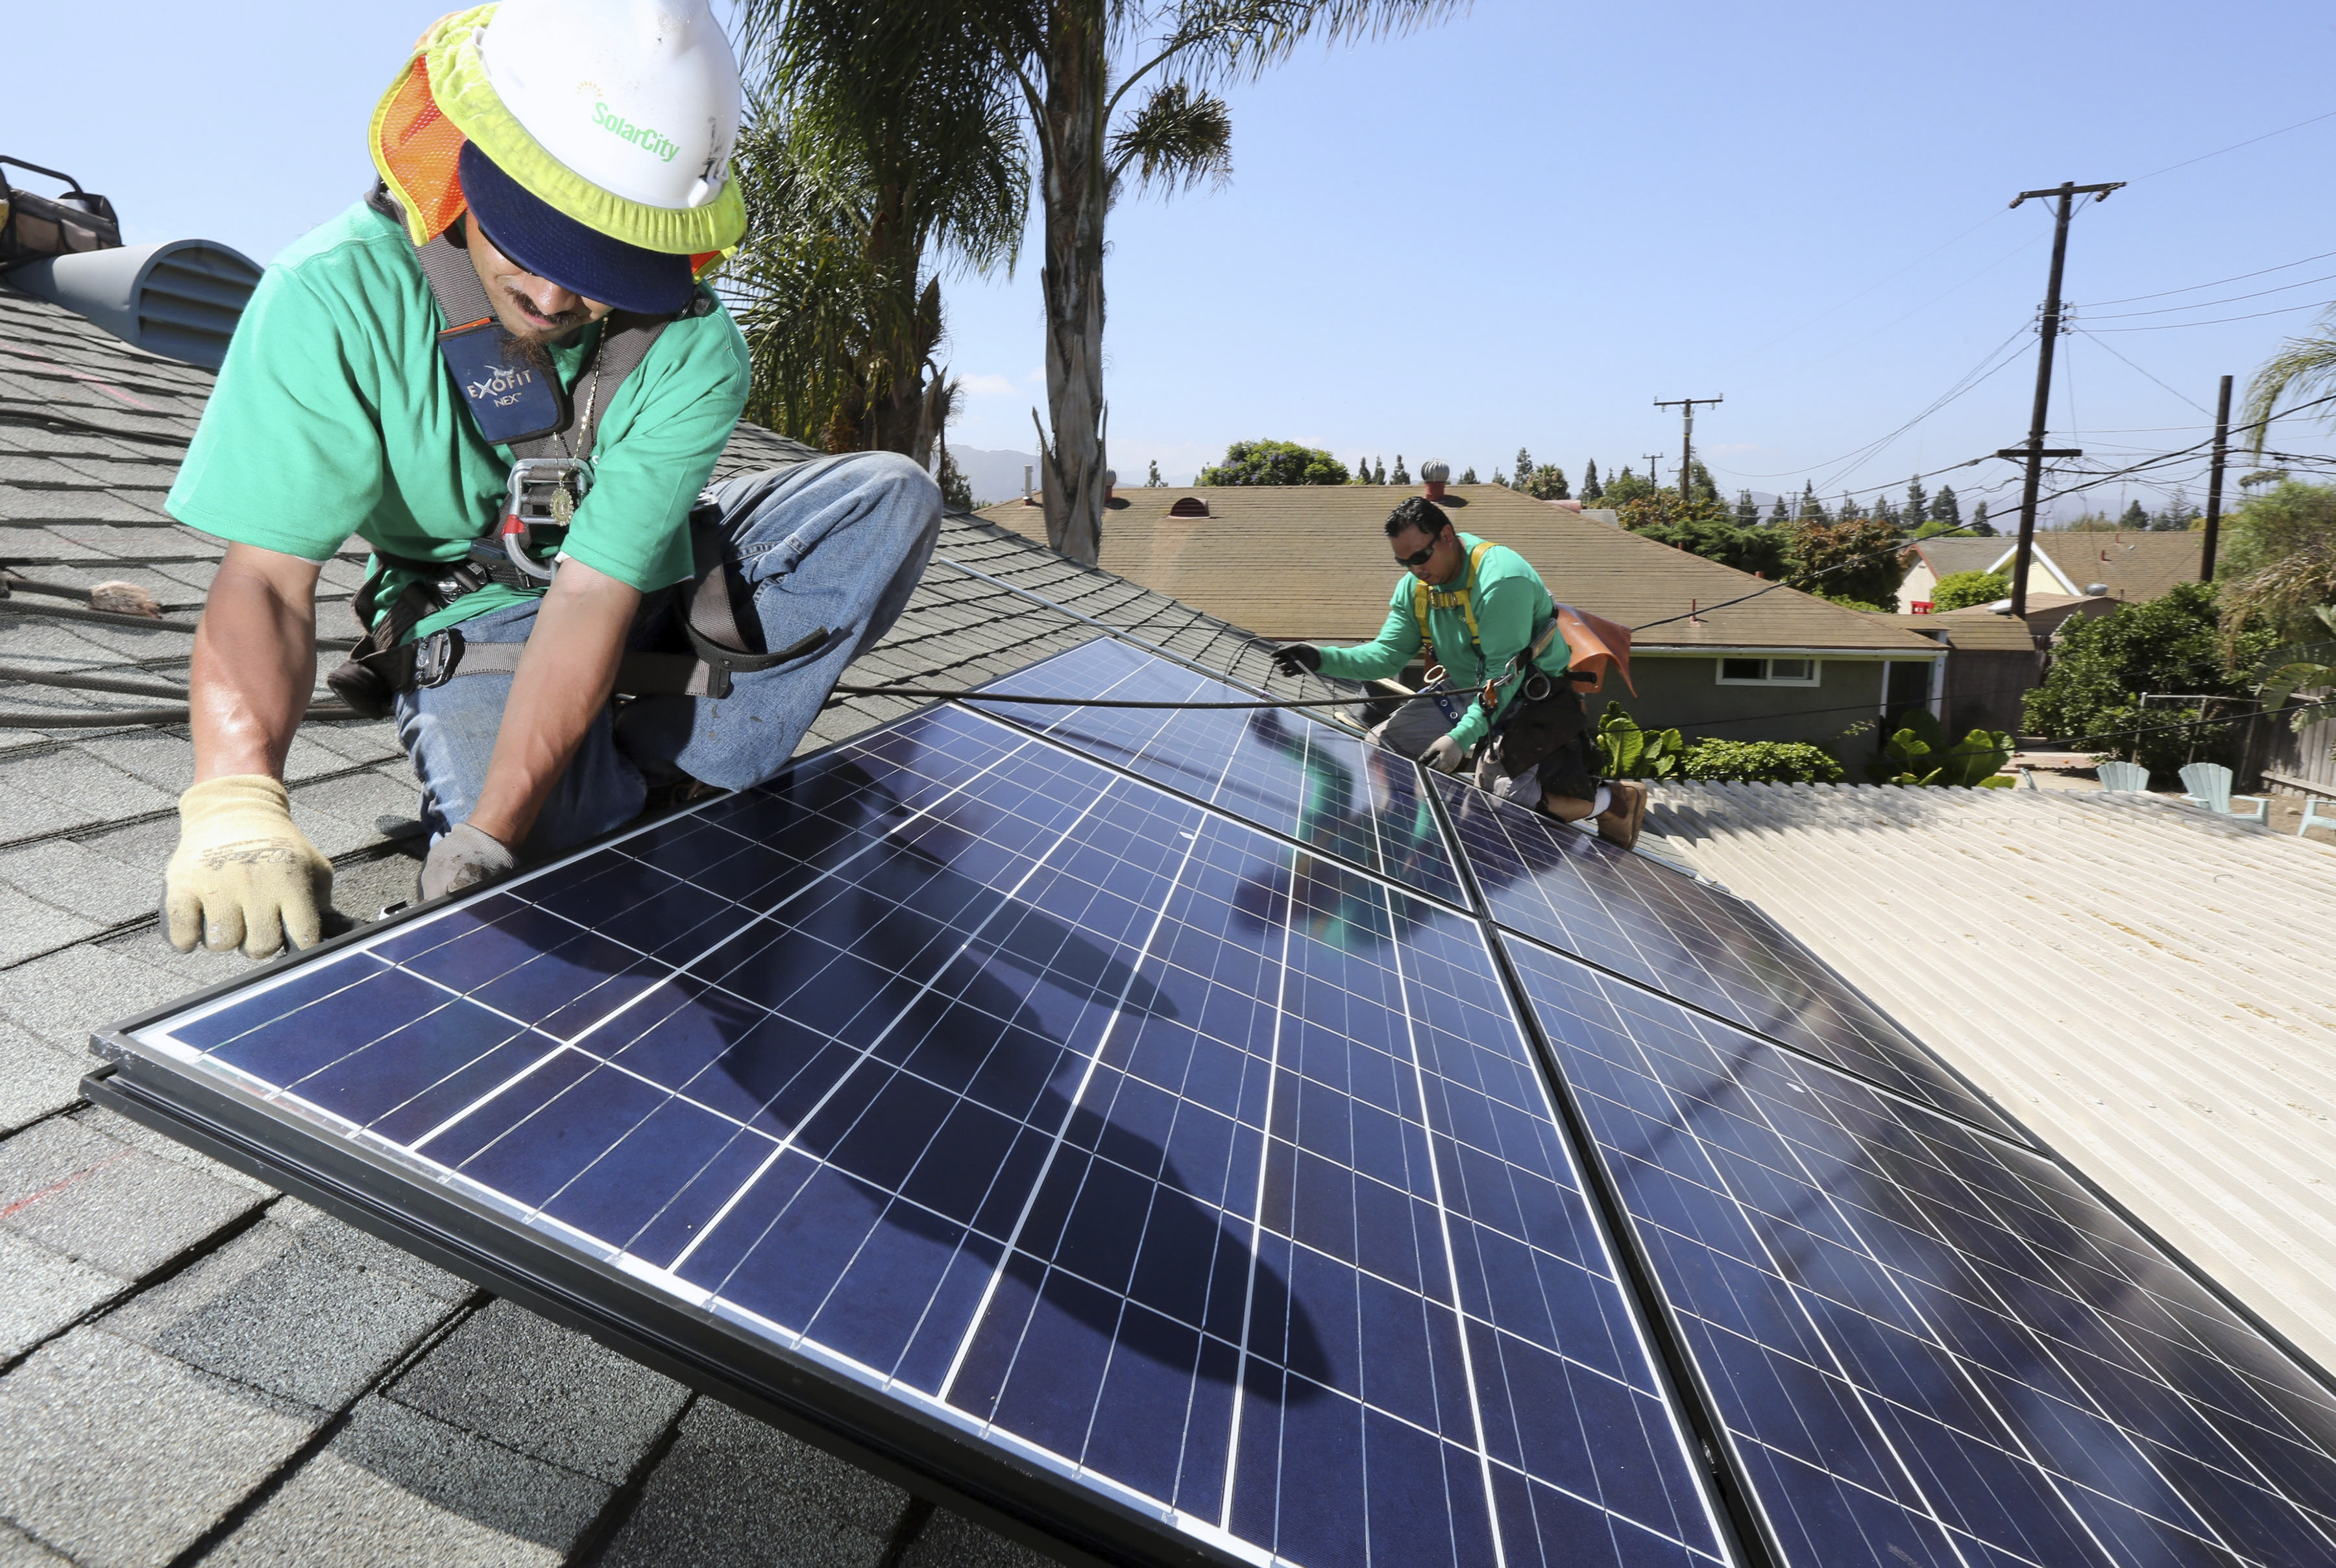 Workers from SolarCity install solar panels on a home in Camarillo, Calif.(New York Times)